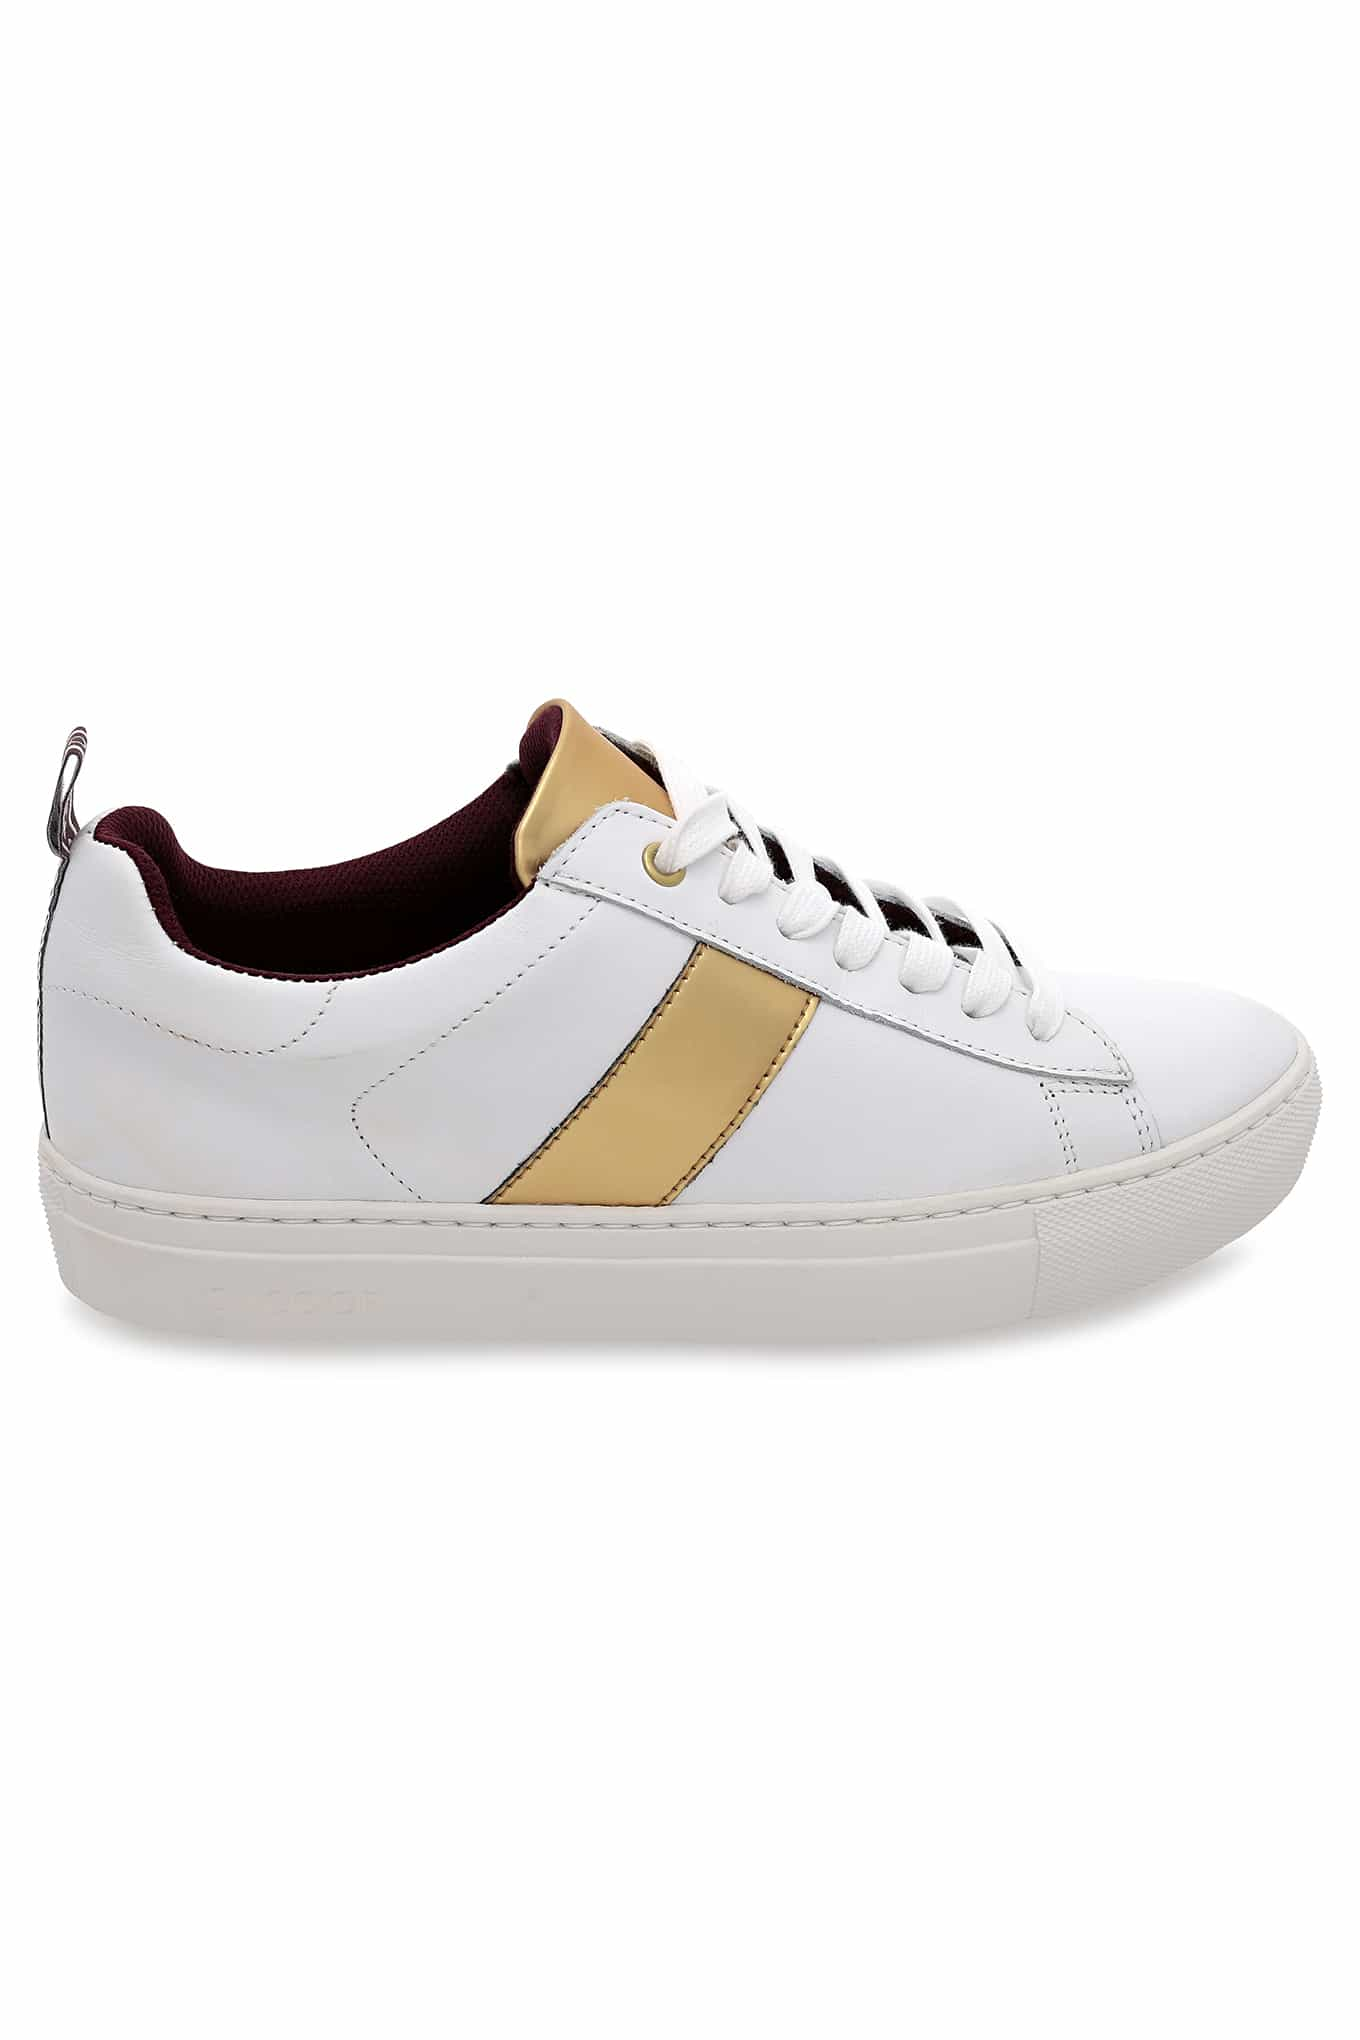 Tenis Branco Casual Mulher